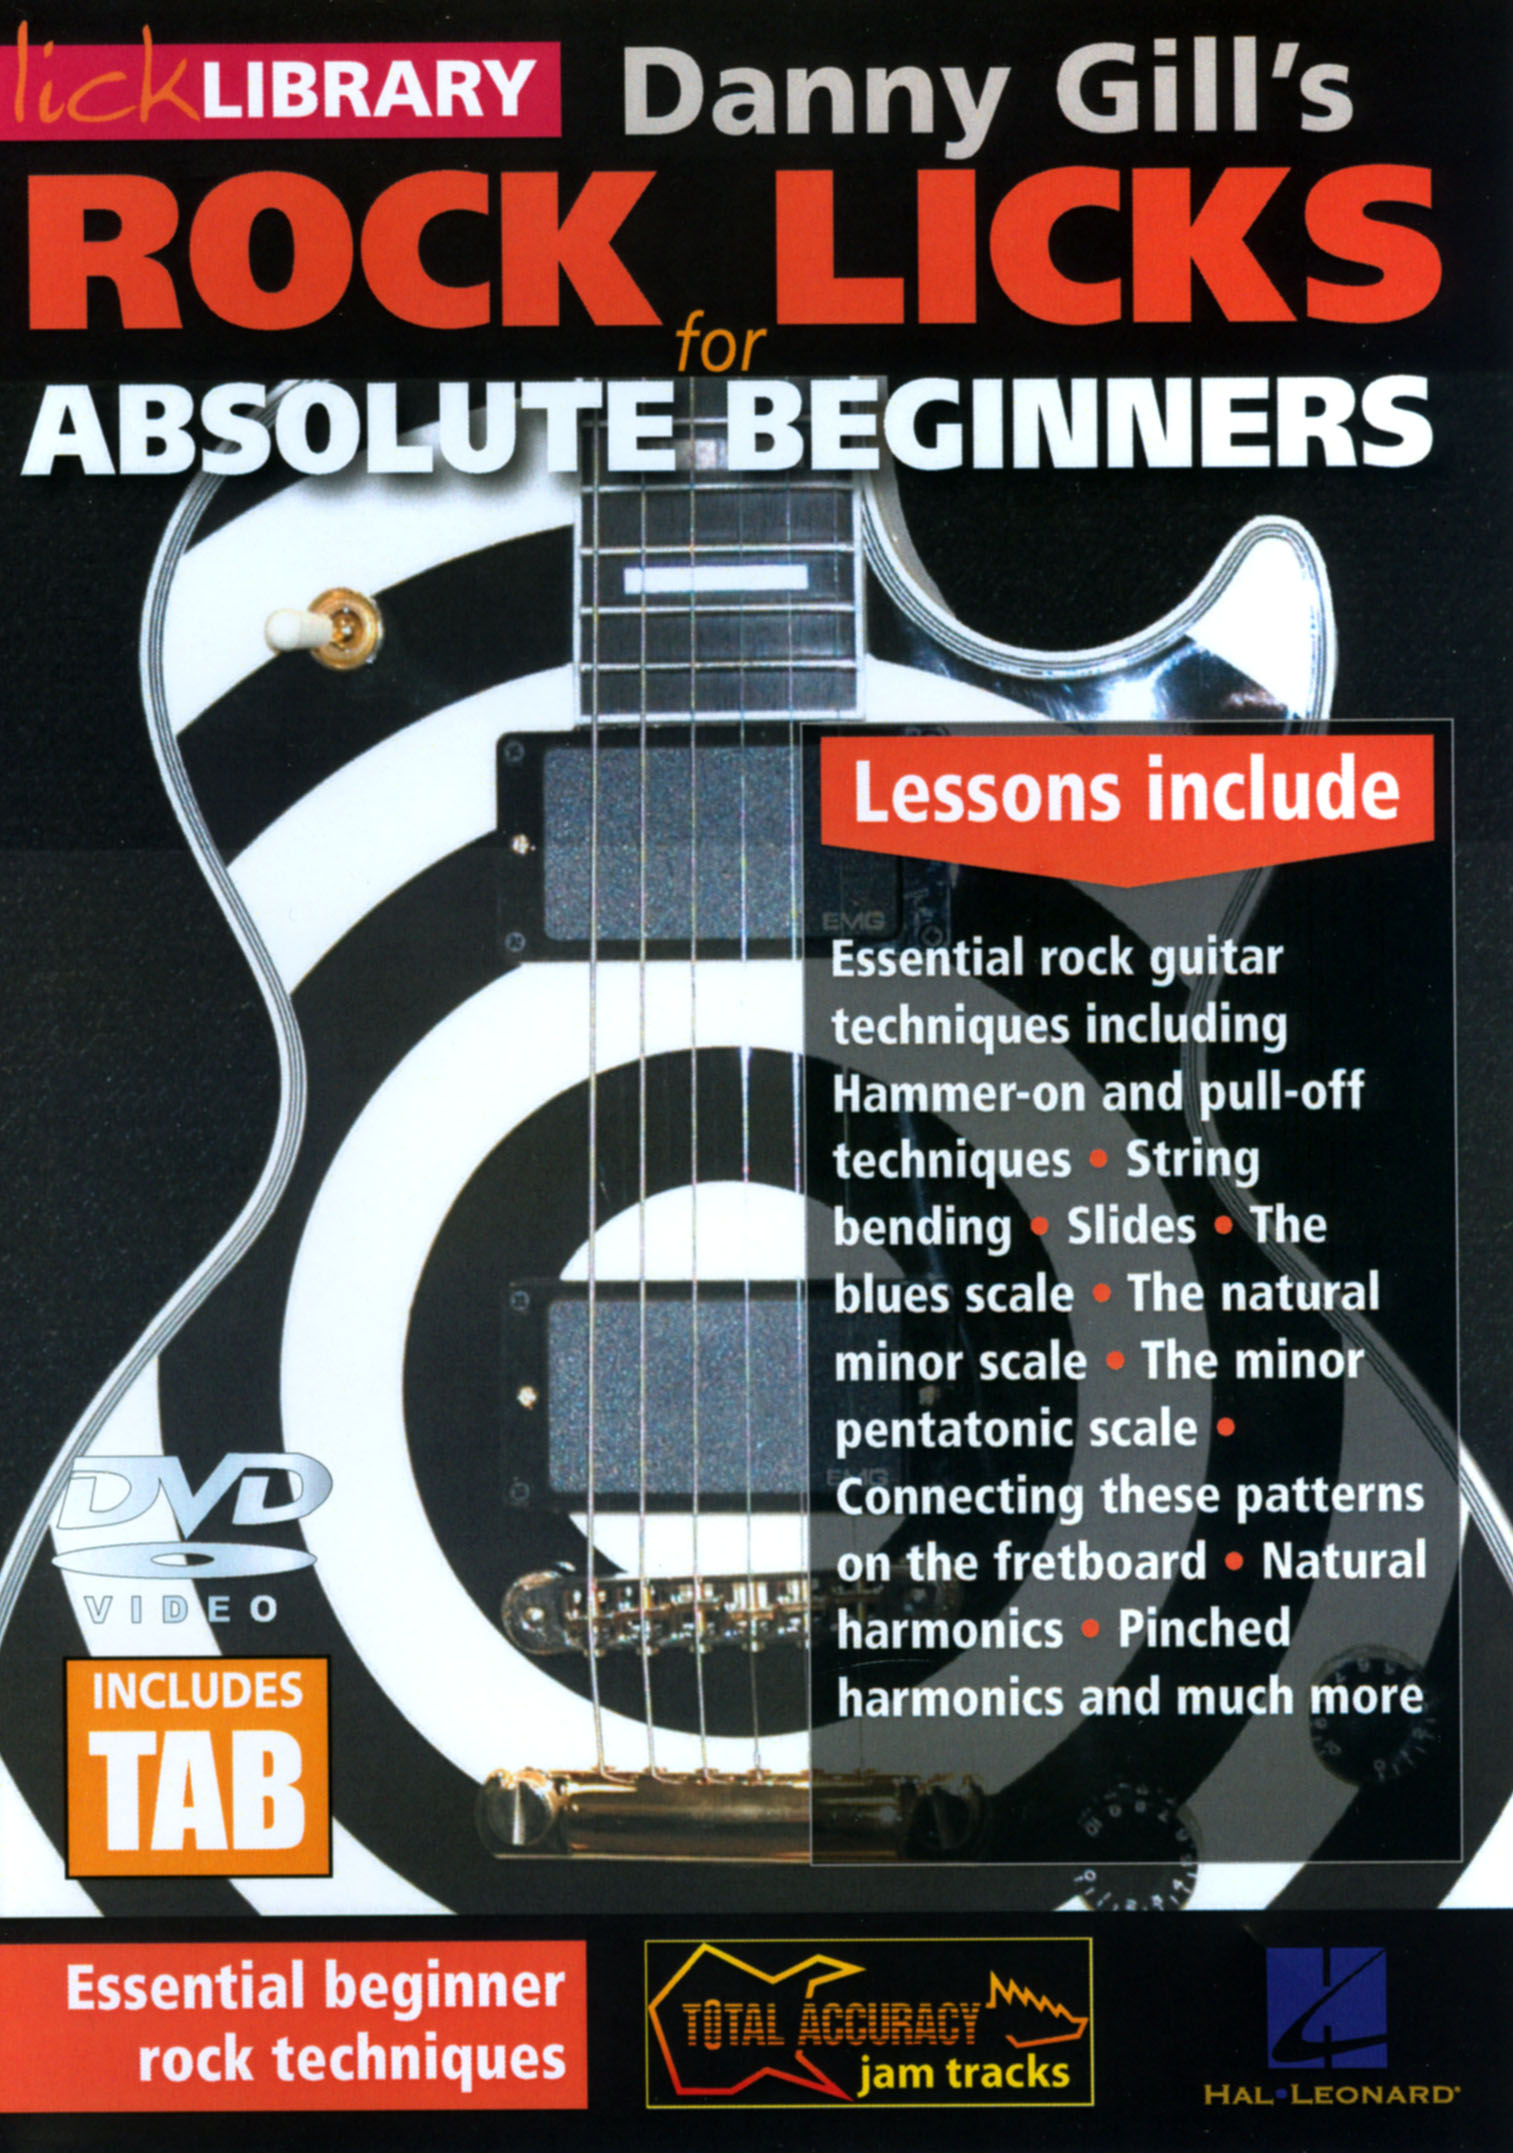 Lick Library: Danny Gill's Rock Licks for Absolute Beginners